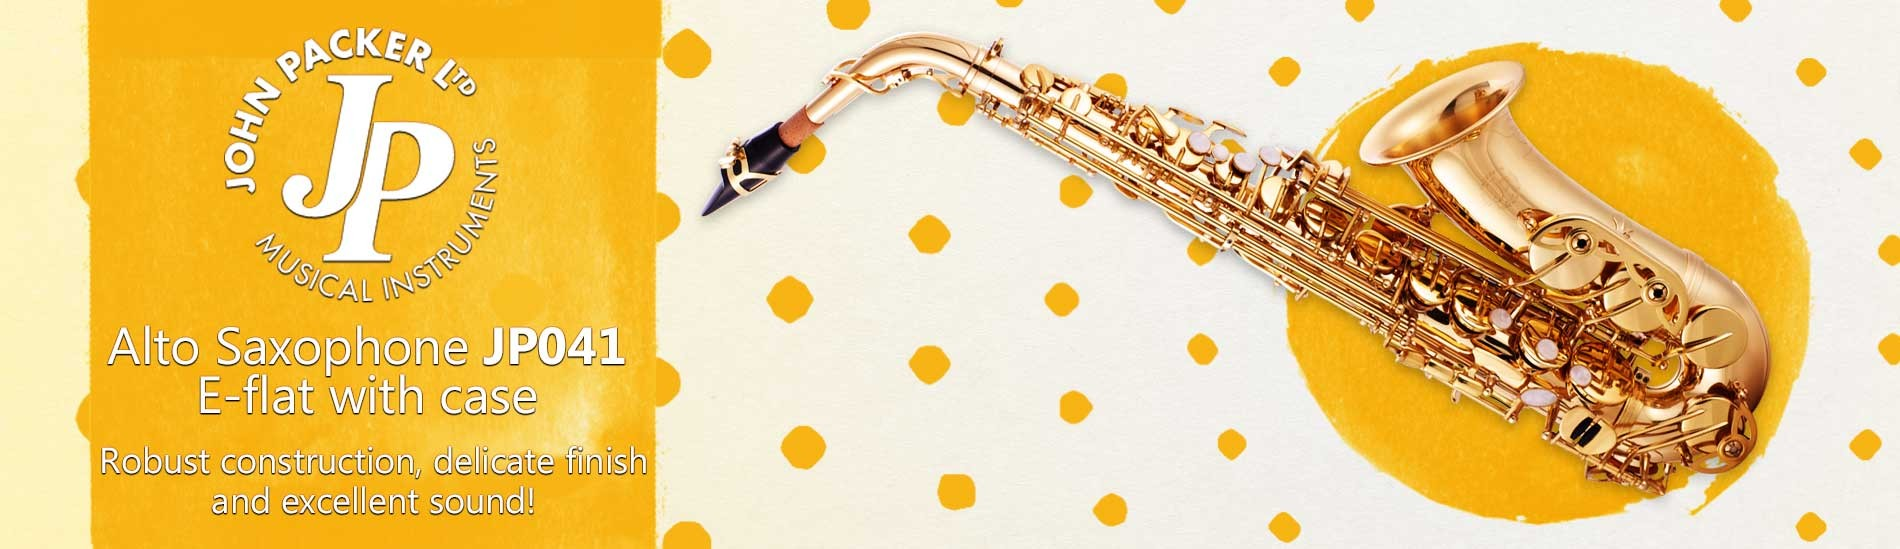 John Packer Alto Saxophone JP041 with Case - Robust construction, delicate finish and excellent sound!